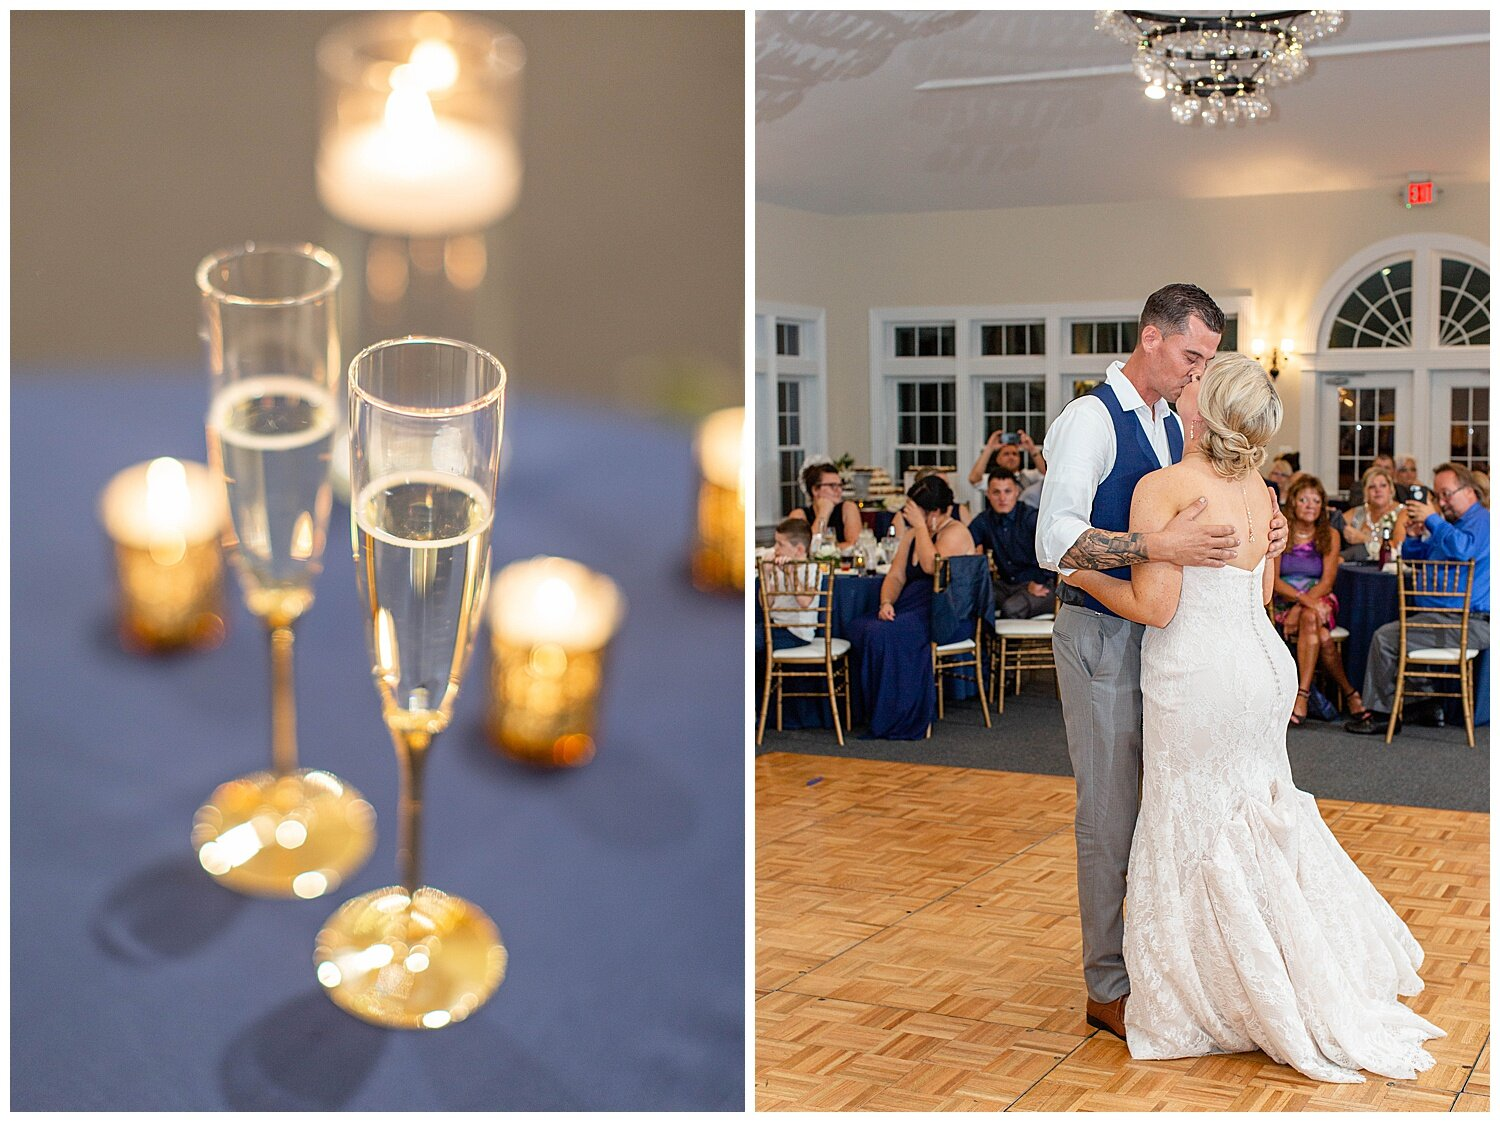 stone-manor-country-club-wedding-emily-belson-photography-33.jpg